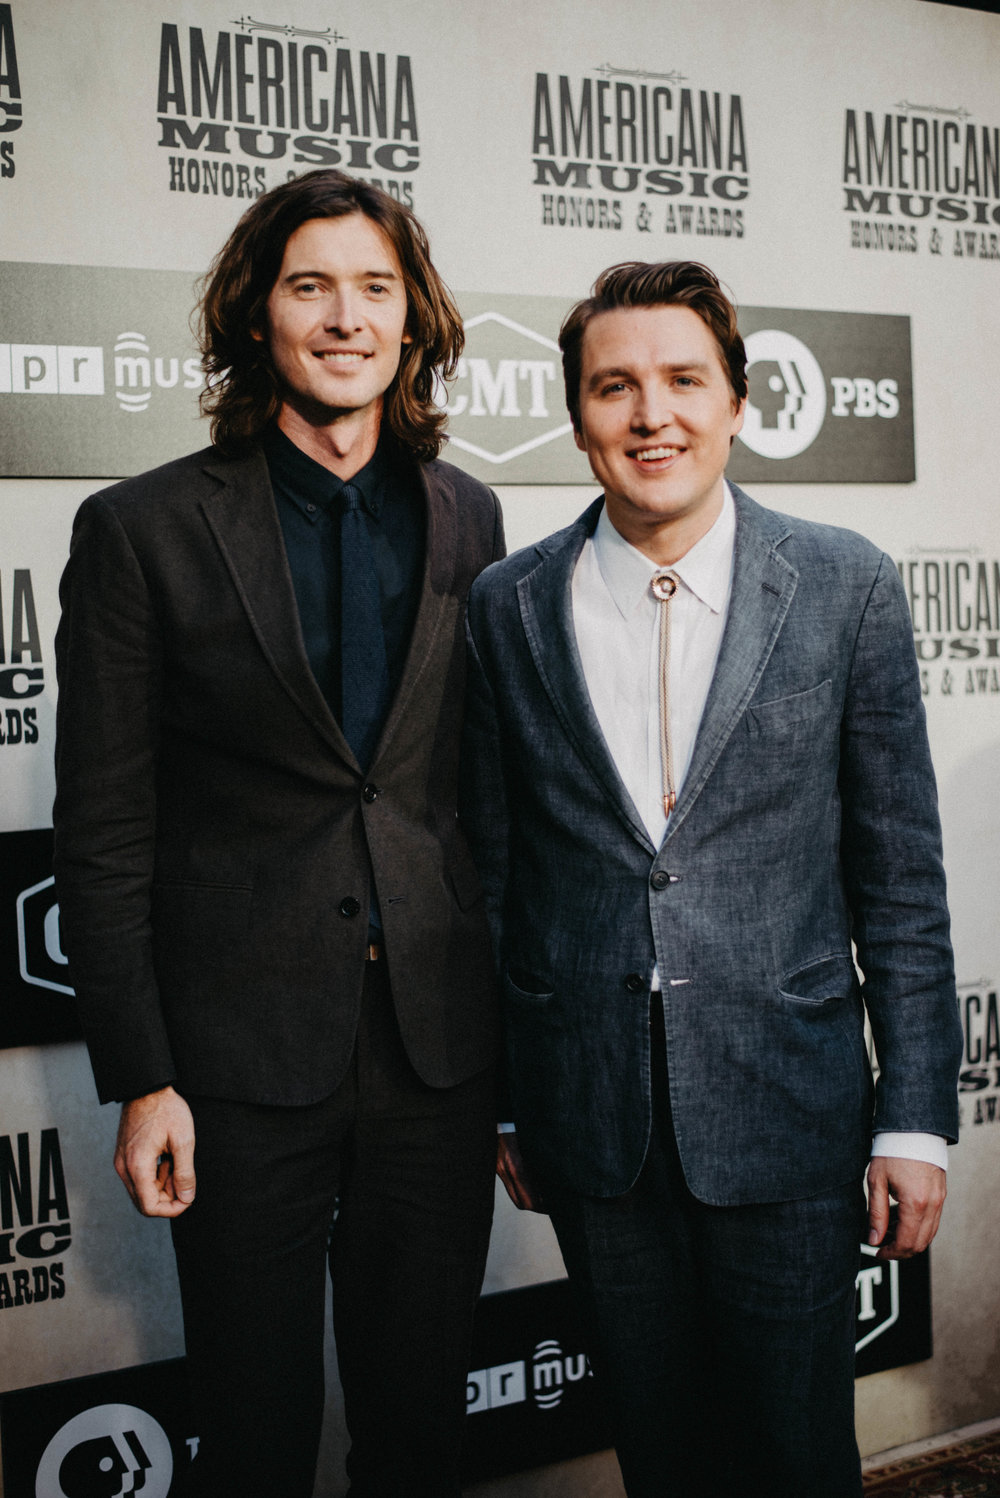 Joey Ryan & Kenneth Pattengale of The Milk Carton Kids